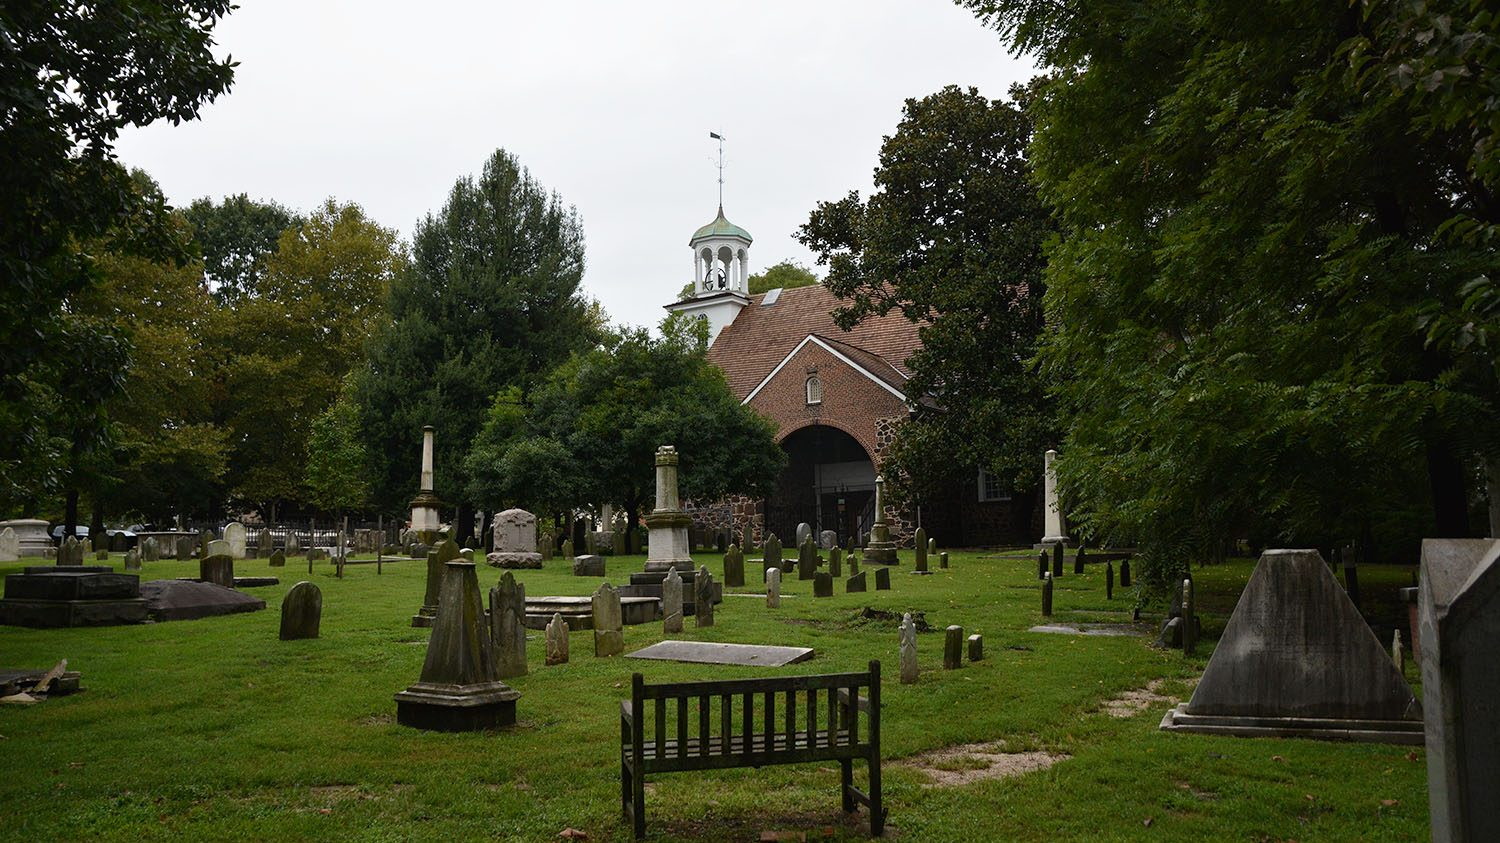 Old Swedes Church viewed from a distance, with many graves in the foreground.